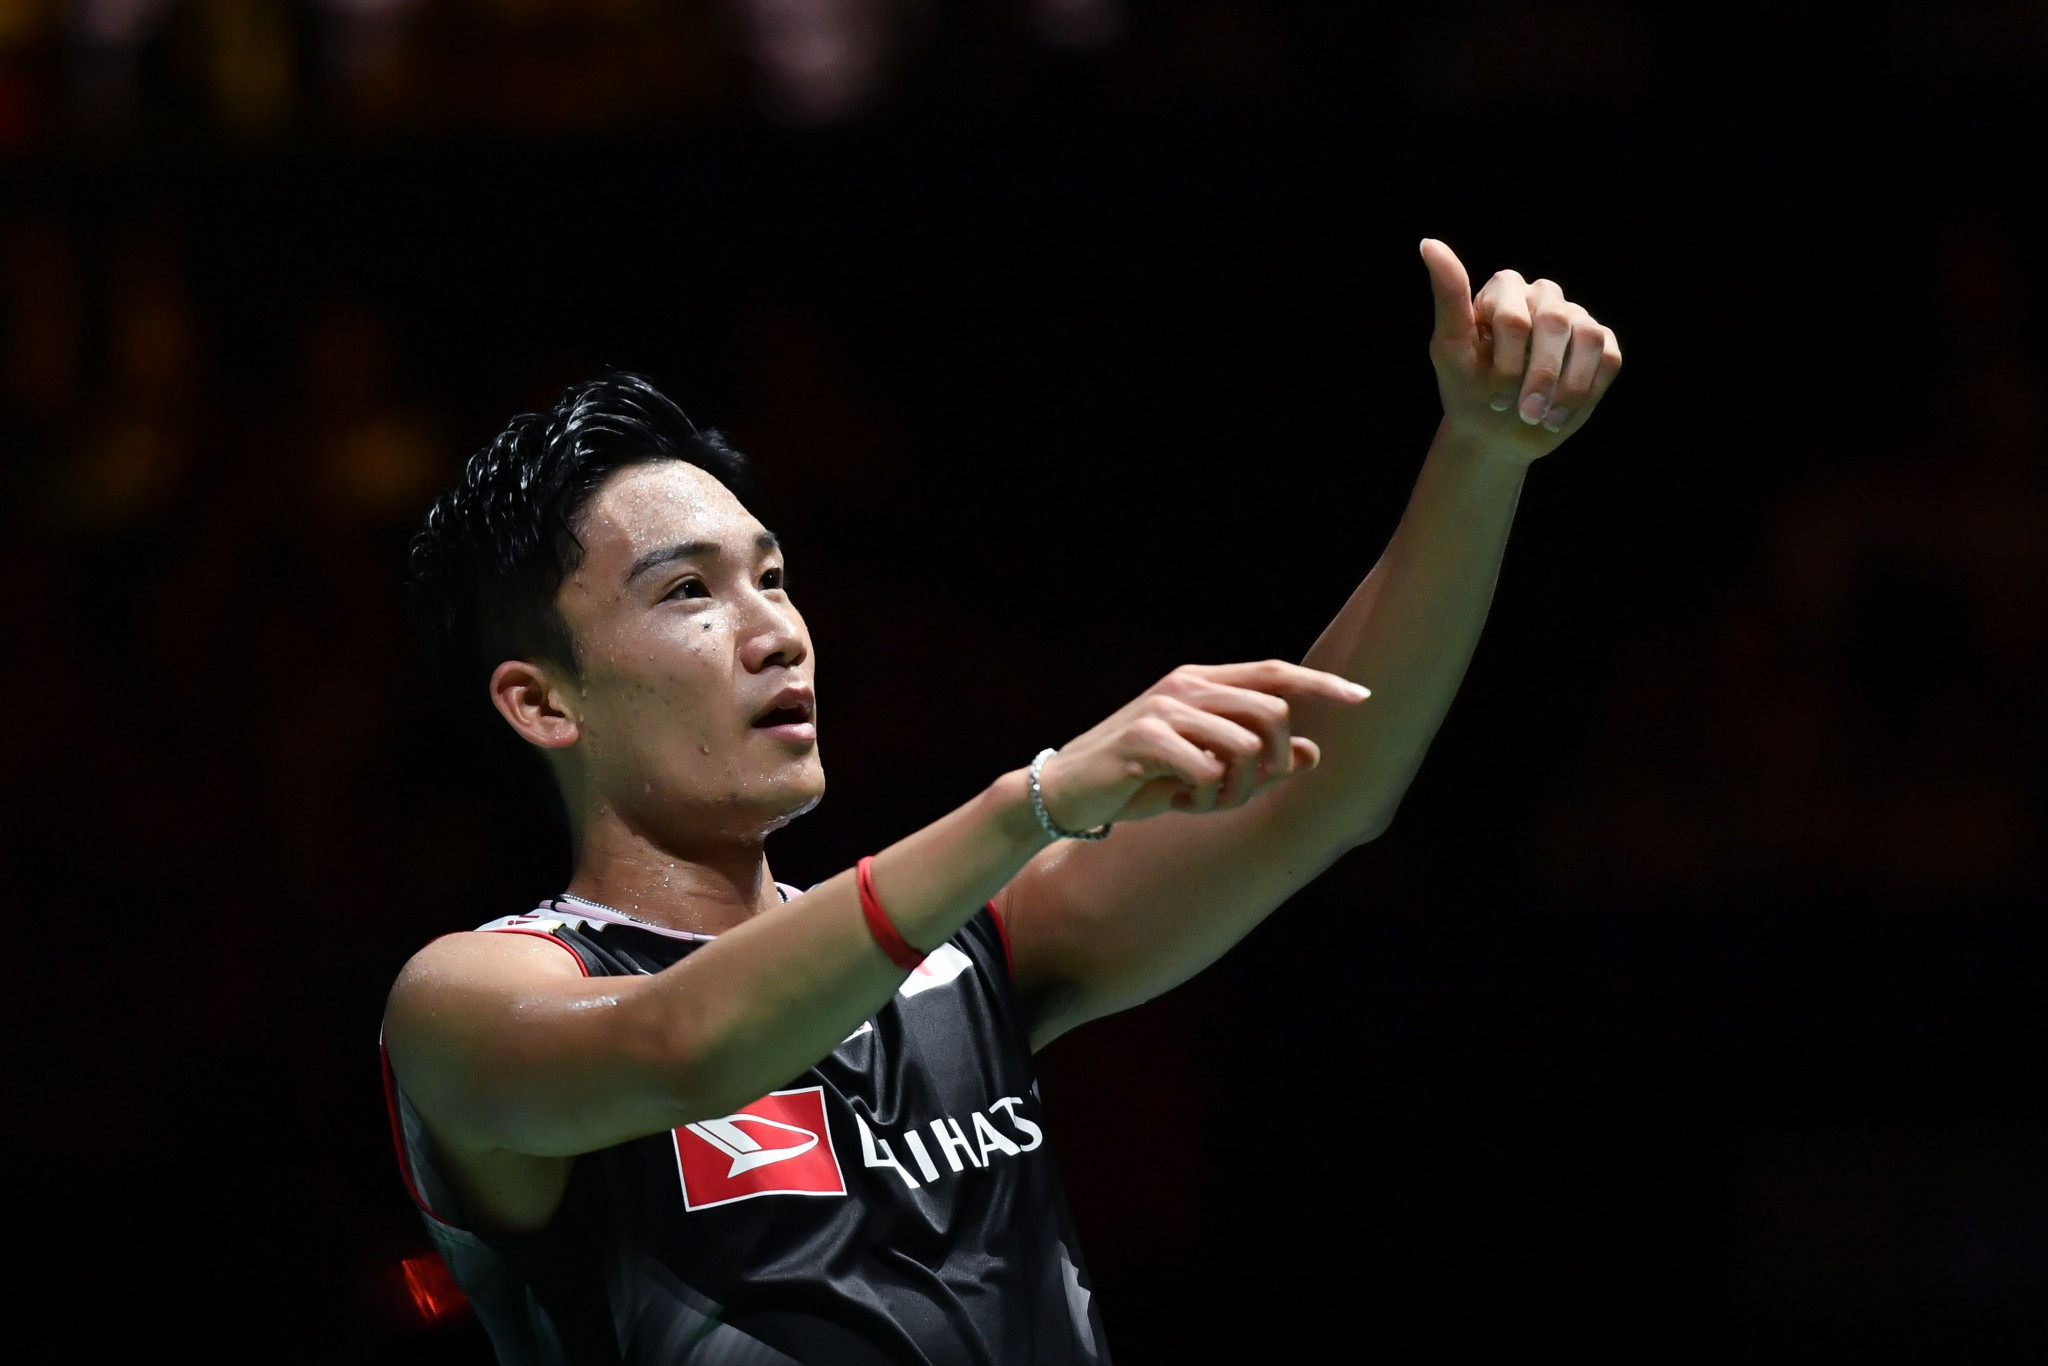 Kento Momota retained his men's singles world title ©Getty Images